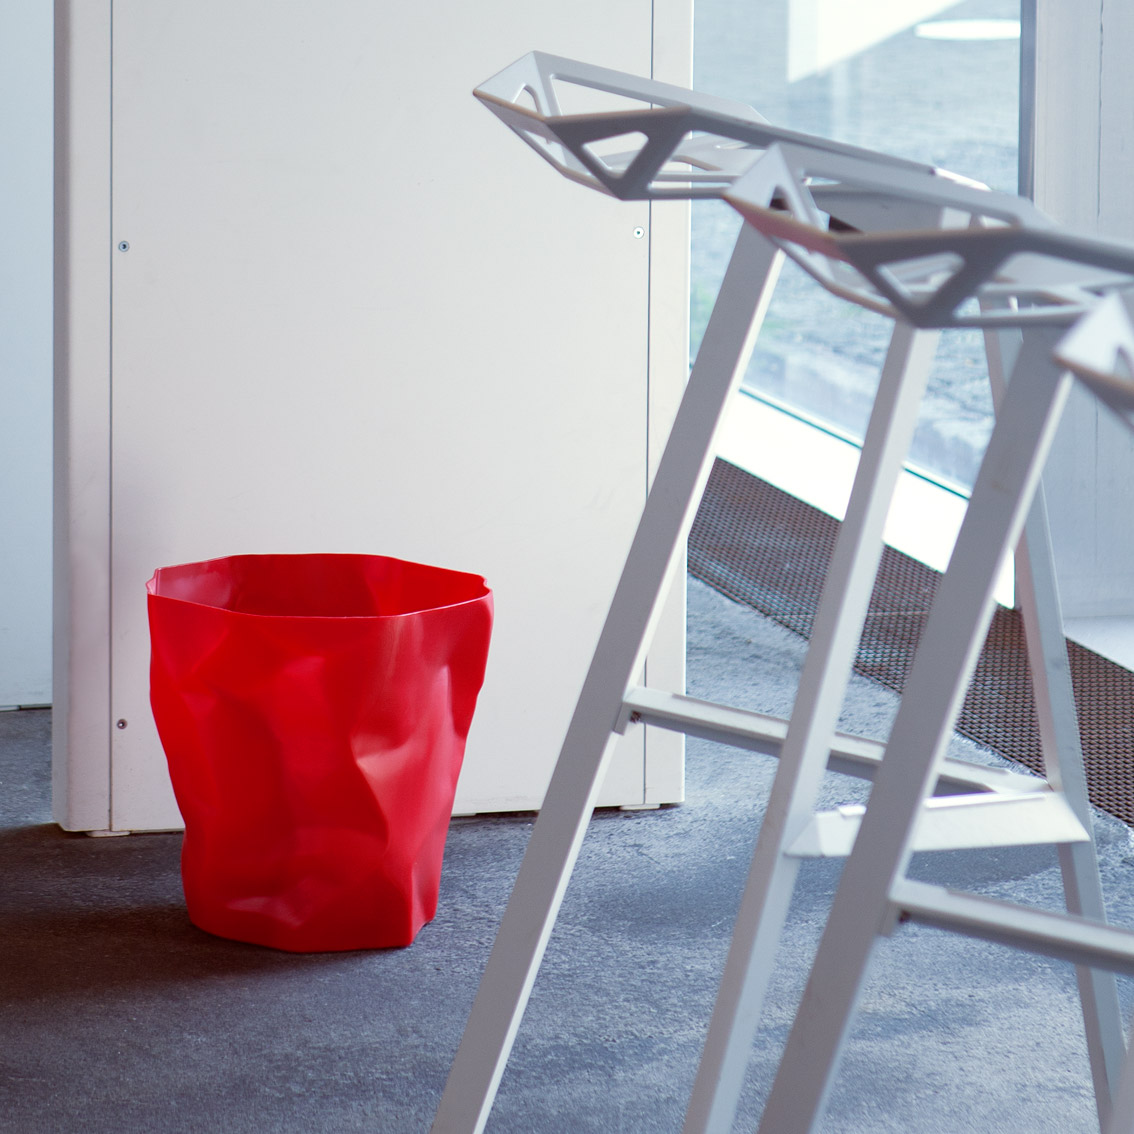 Bin Bin paper waste basket Red